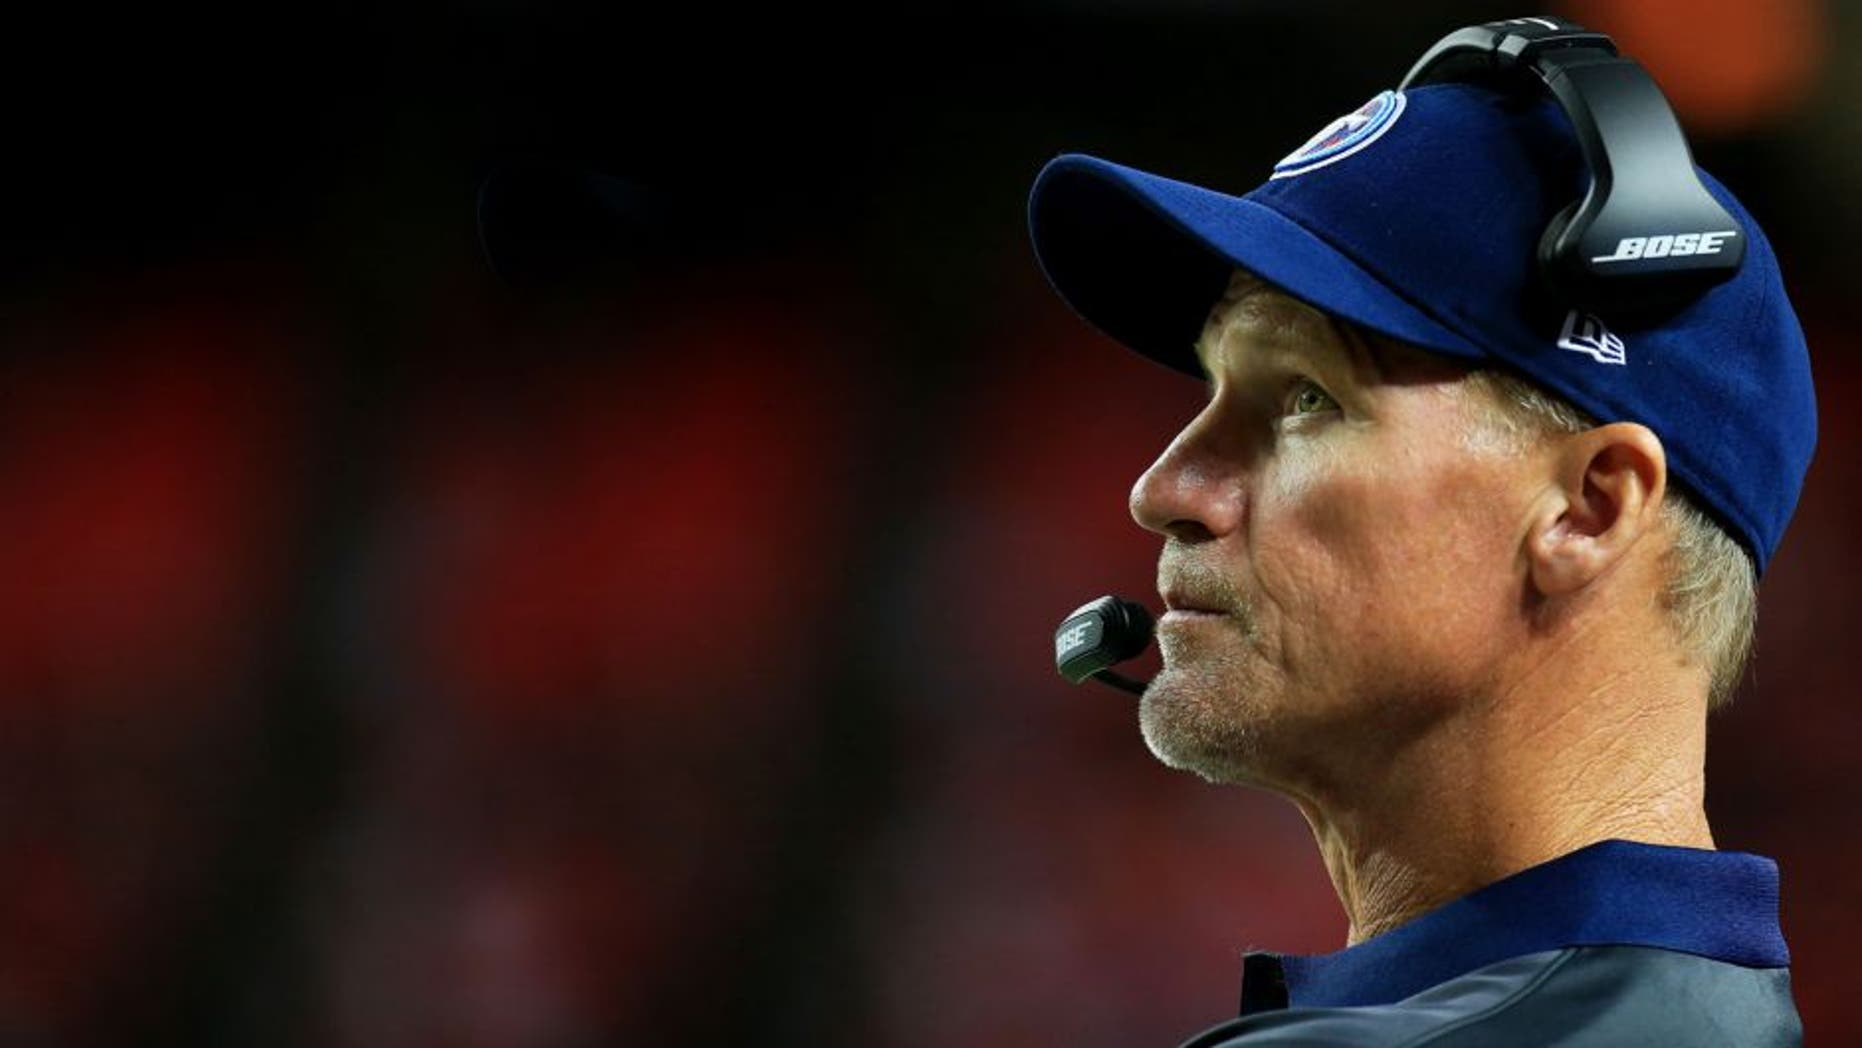 ATLANTA, GA - AUGUST 14: Head coach Ken Whisenhunt of the Tennessee Titans looks on in the second half of a preseason game against the Atlanta Falcons at the Georgia Dome on August 14, 2015 in Atlanta, Georgia. (Photo by Daniel Shirey/Getty Images)